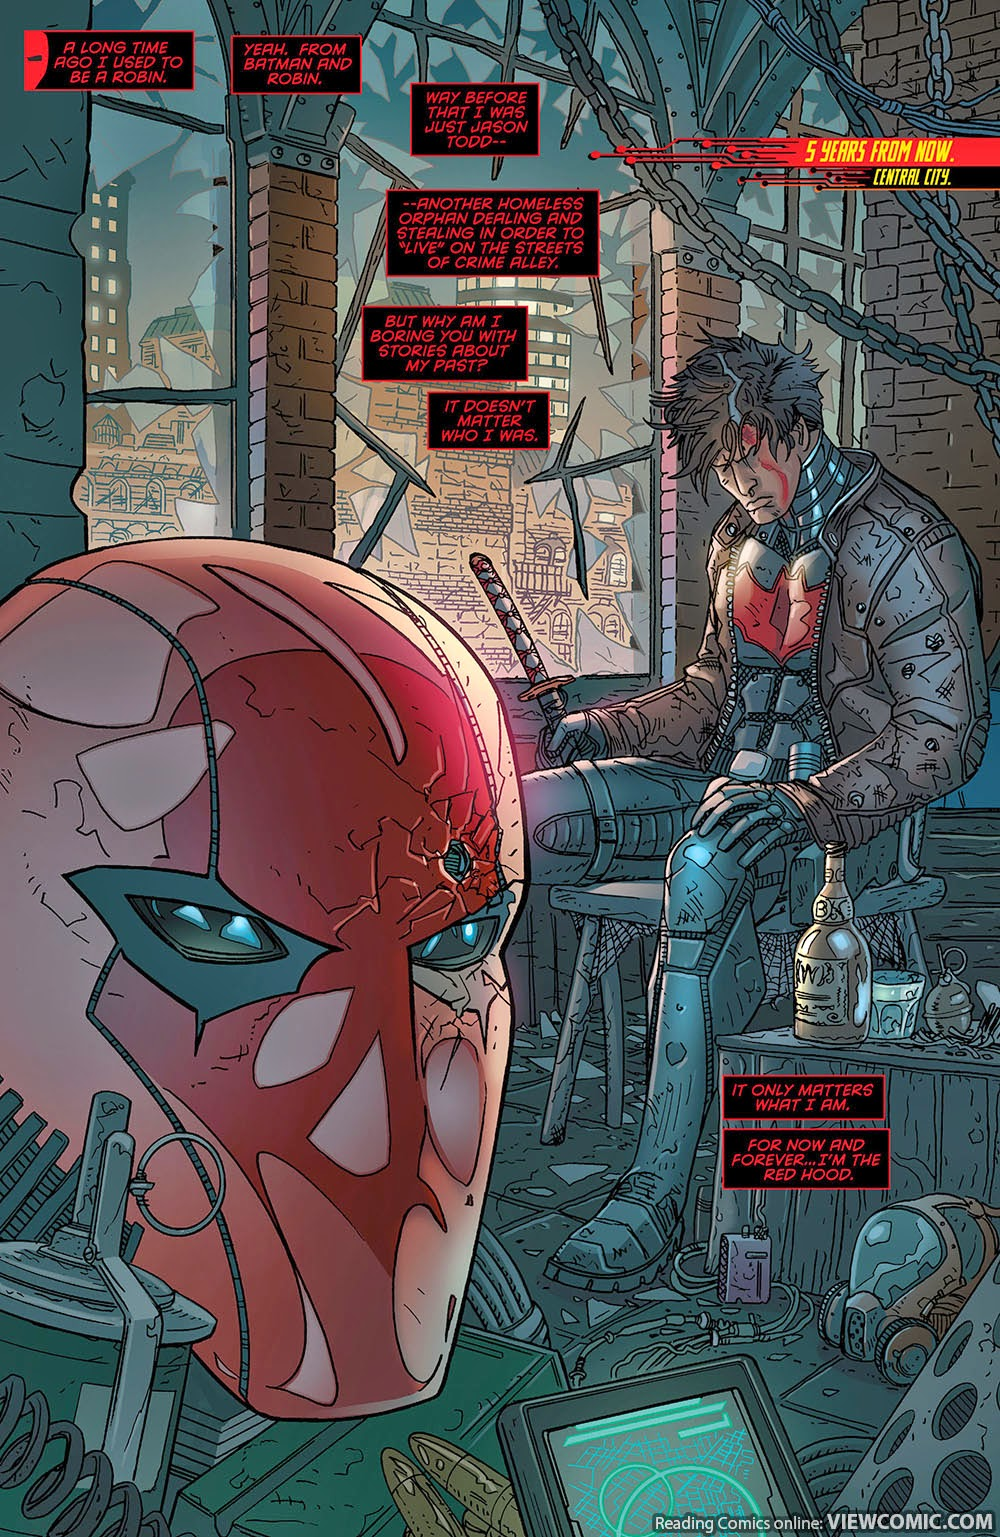 Red Hood and the Outlaws Futures End 001 (2014) | Viewcomic reading